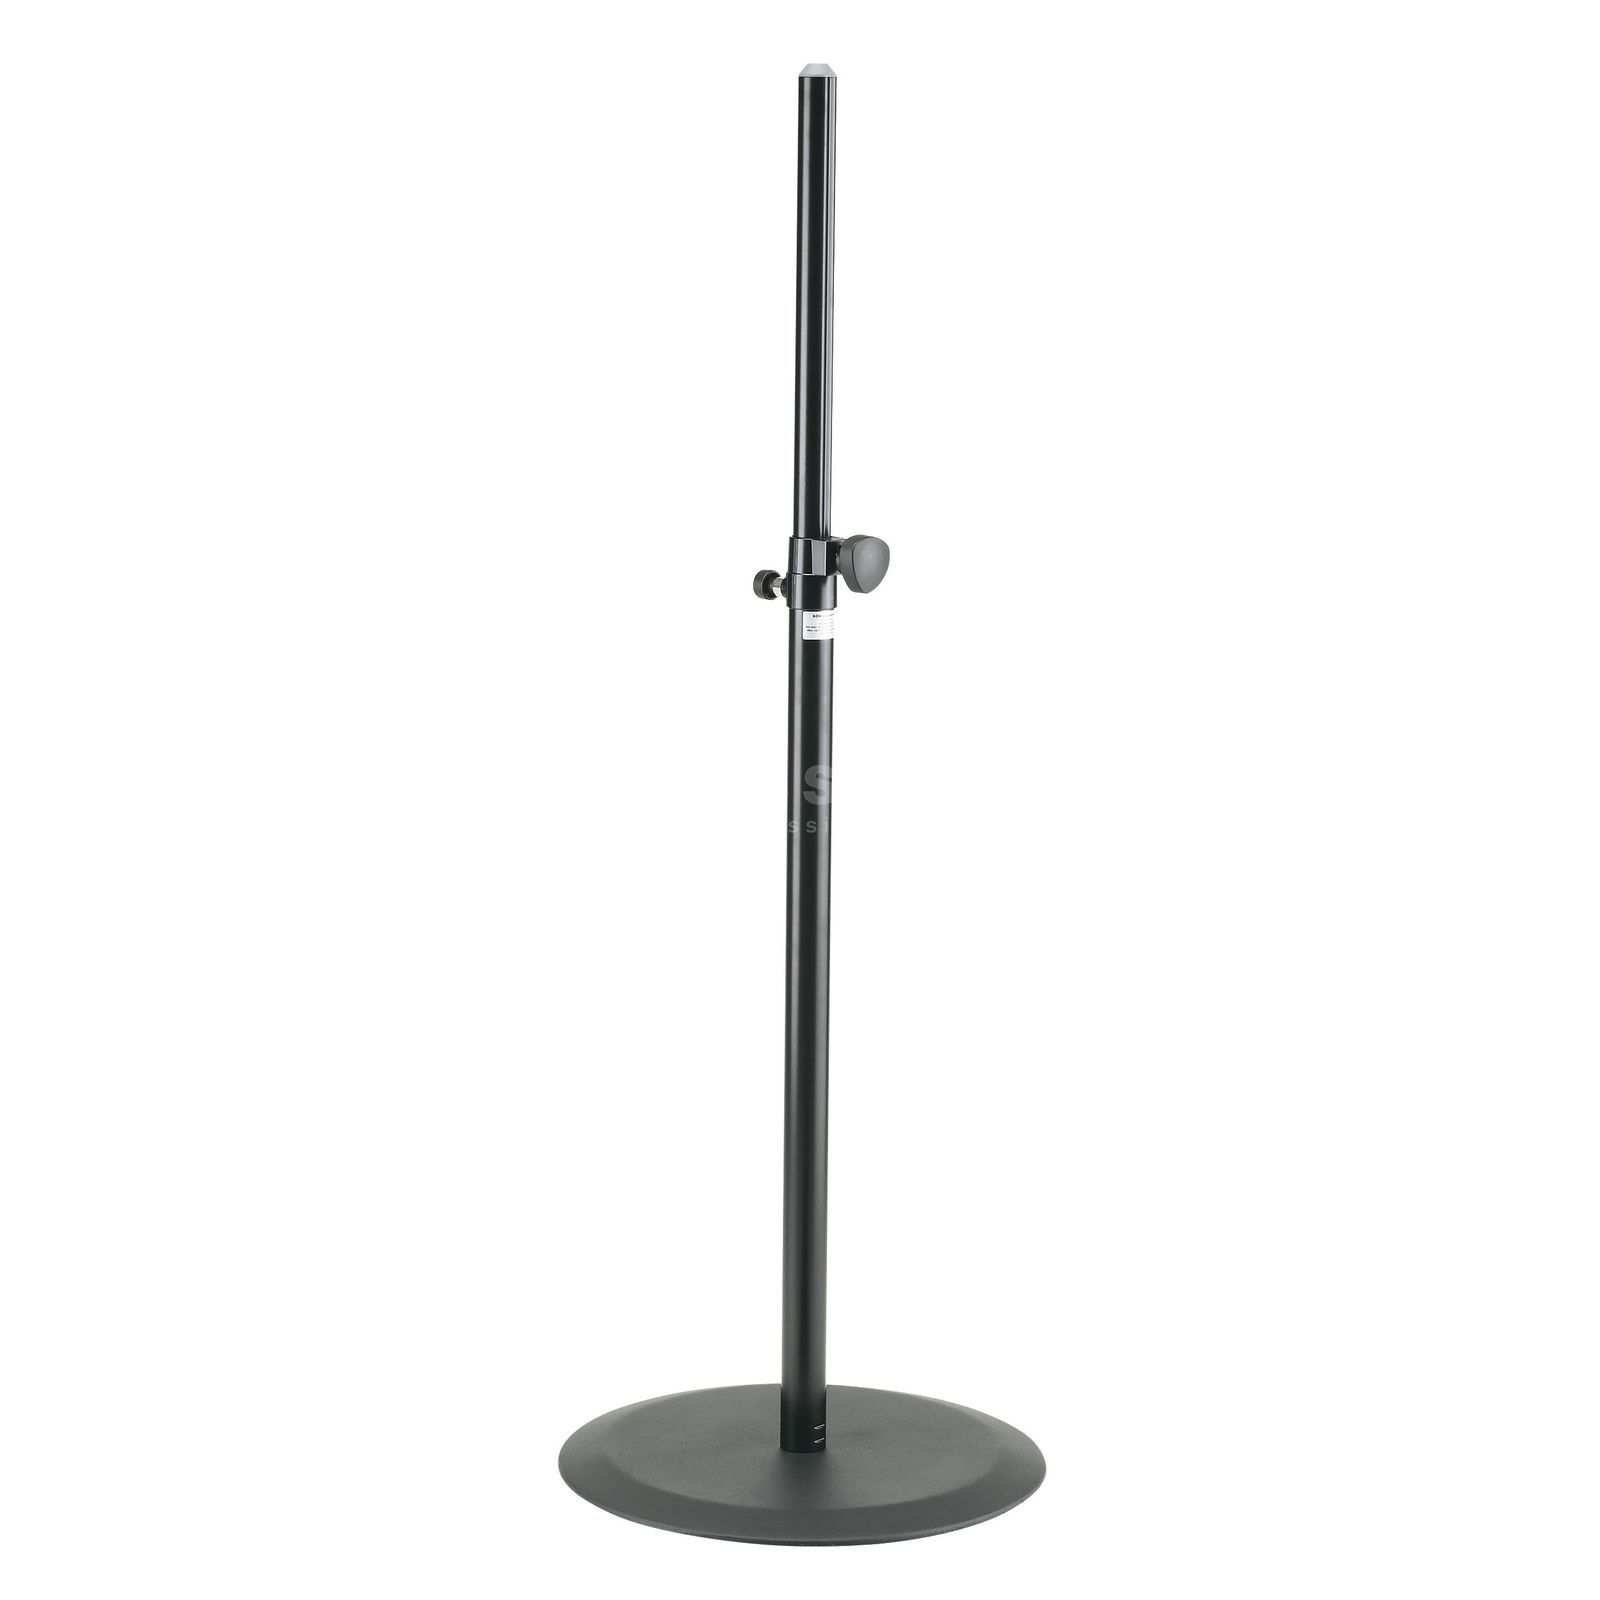 König & Meyer 26735 speaker stand black H: 1080/1780 mm, max. 35 kg Produktbillede